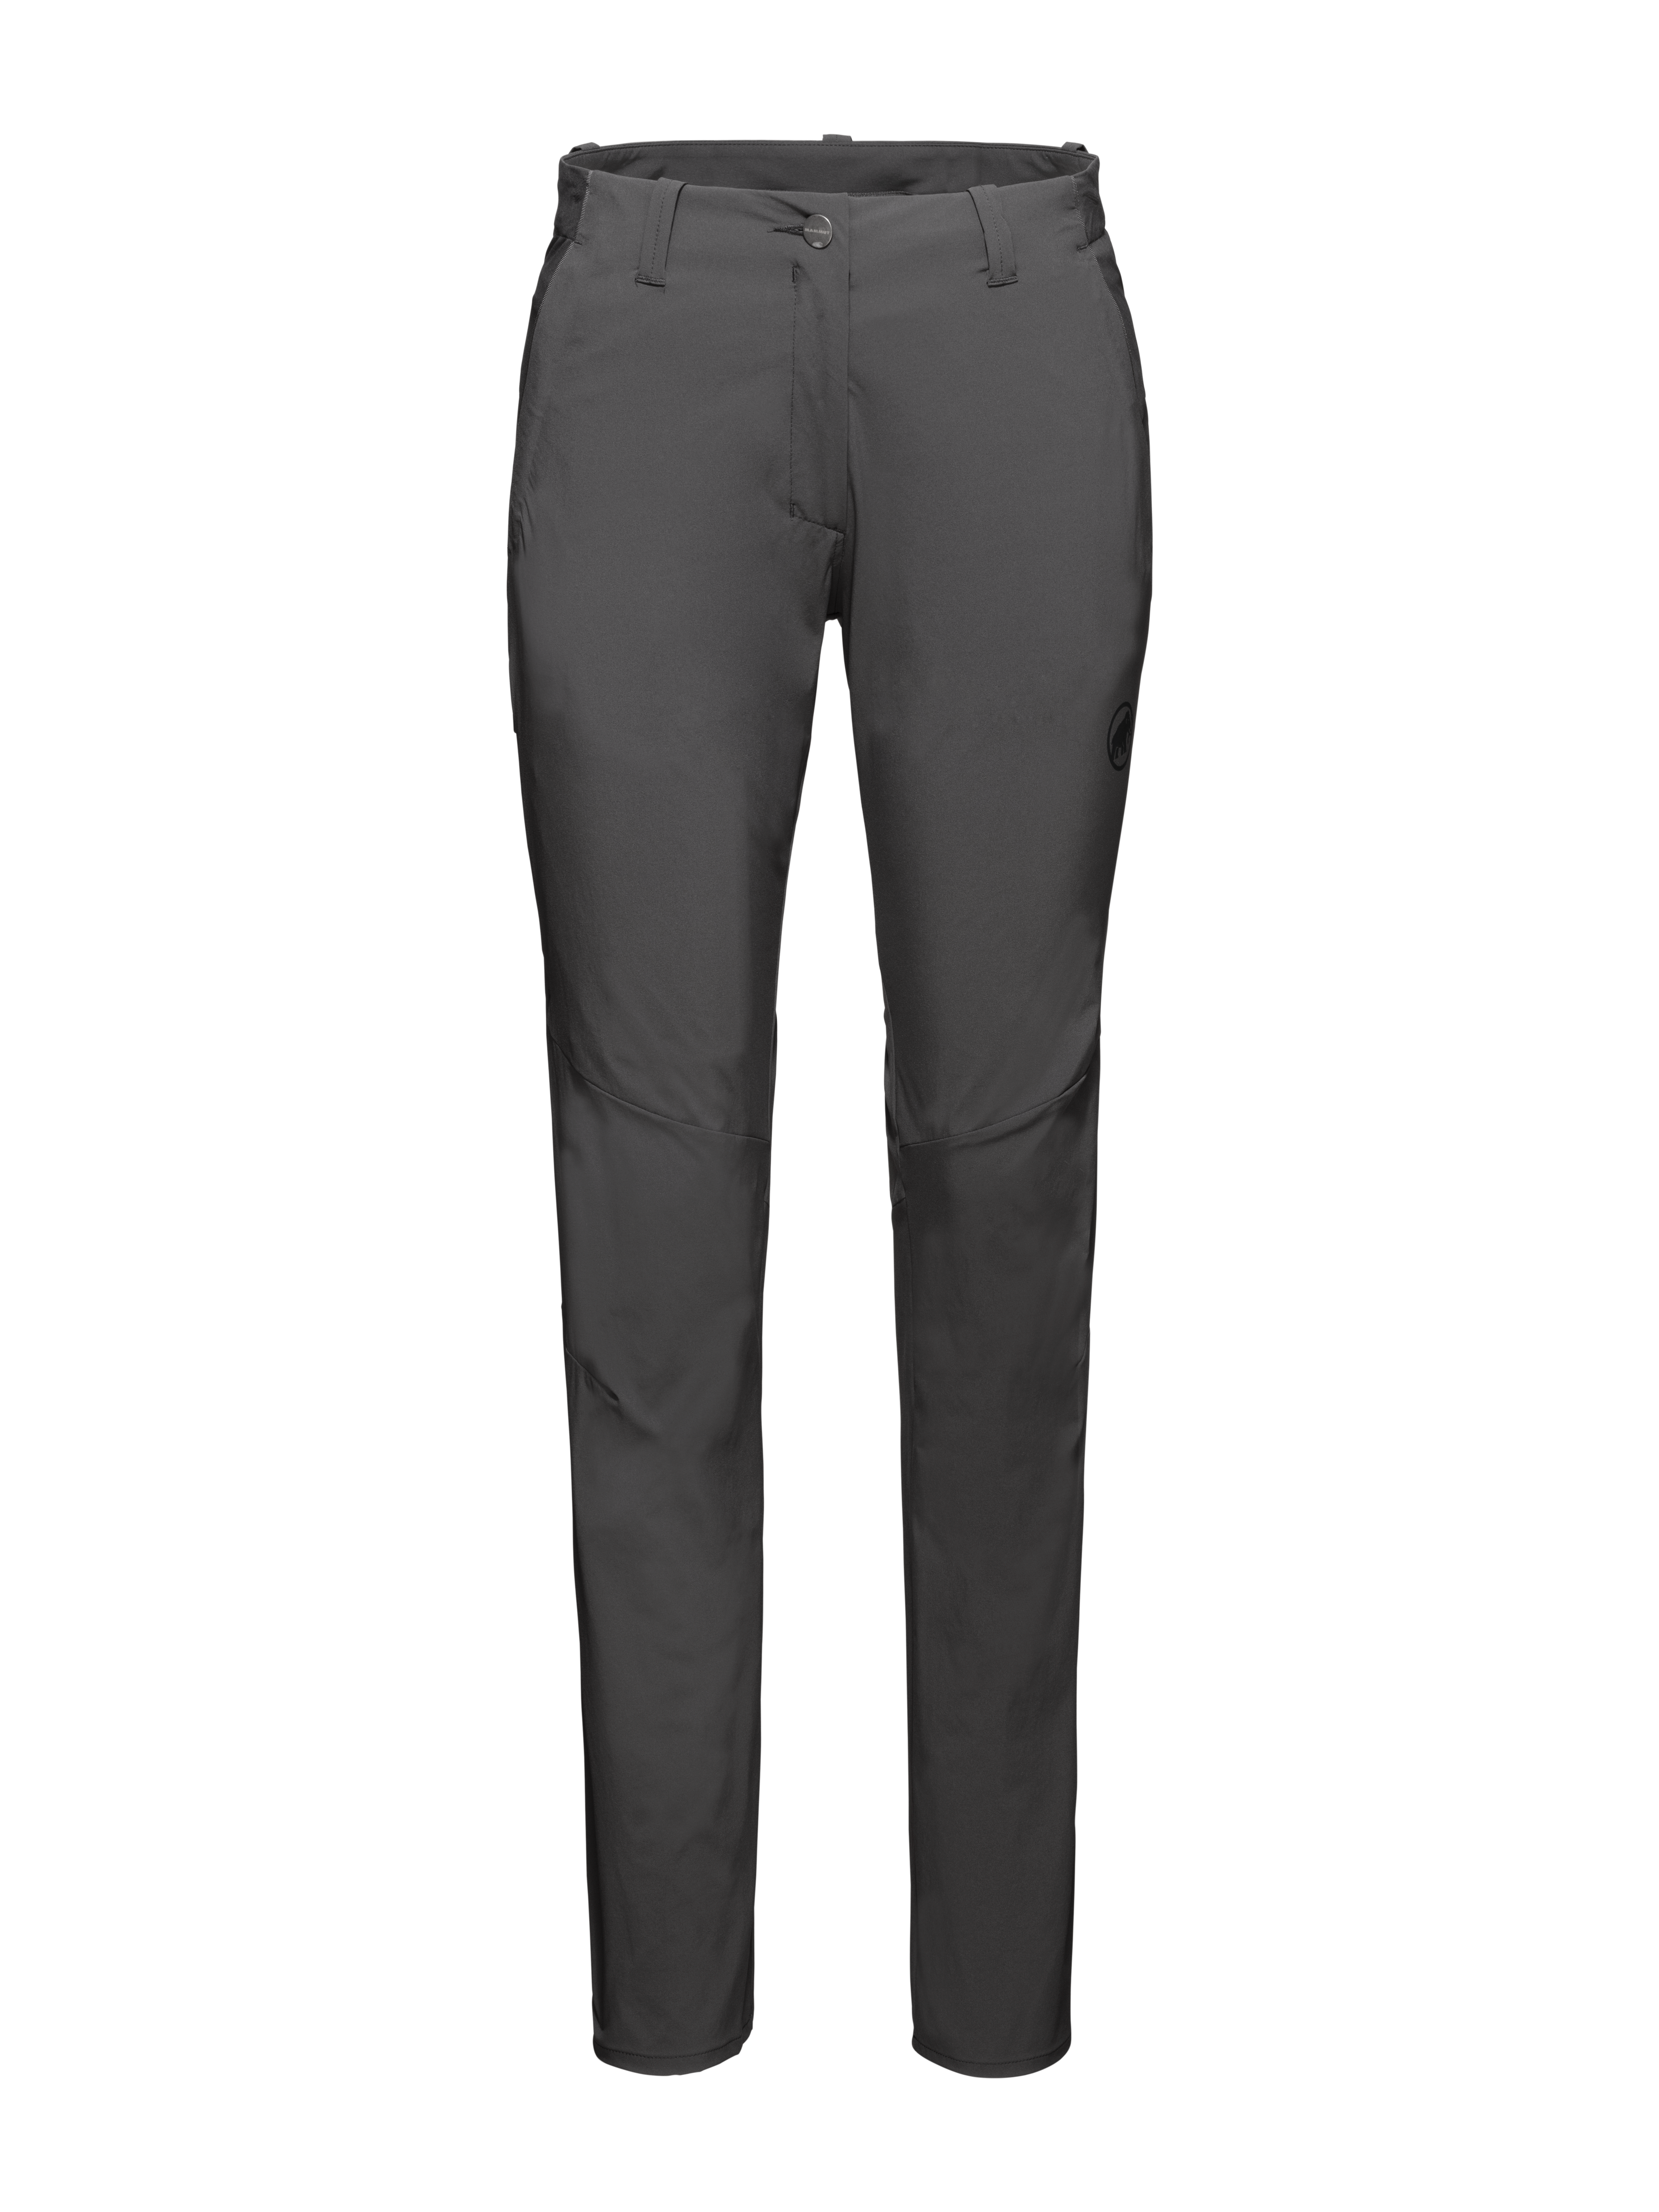 Runbold Pants Women product image